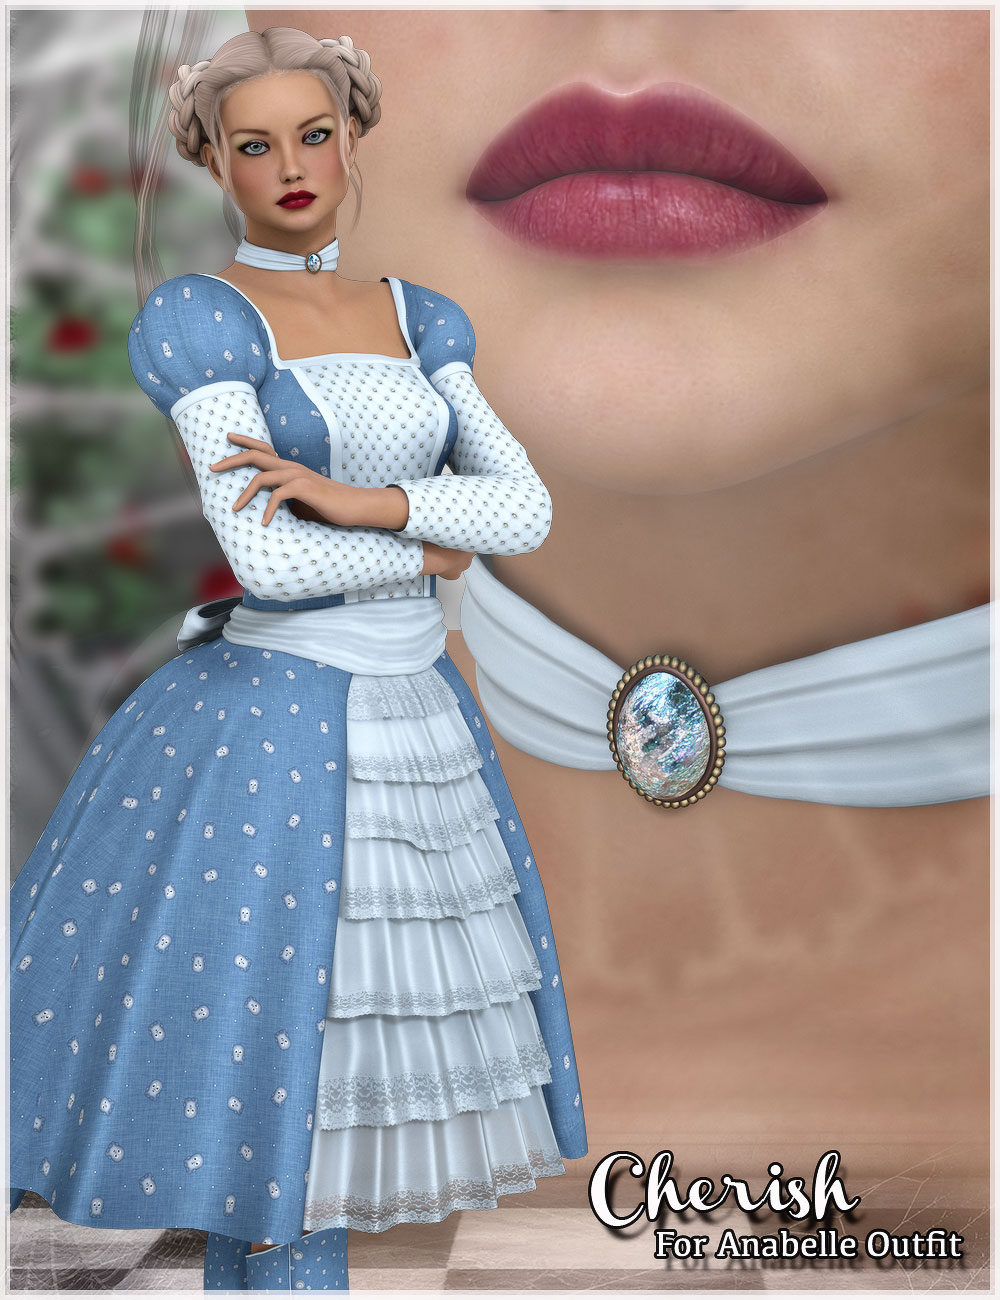 Cherish For Anabelle Outfit by: Belladzines, 3D Models by Daz 3D